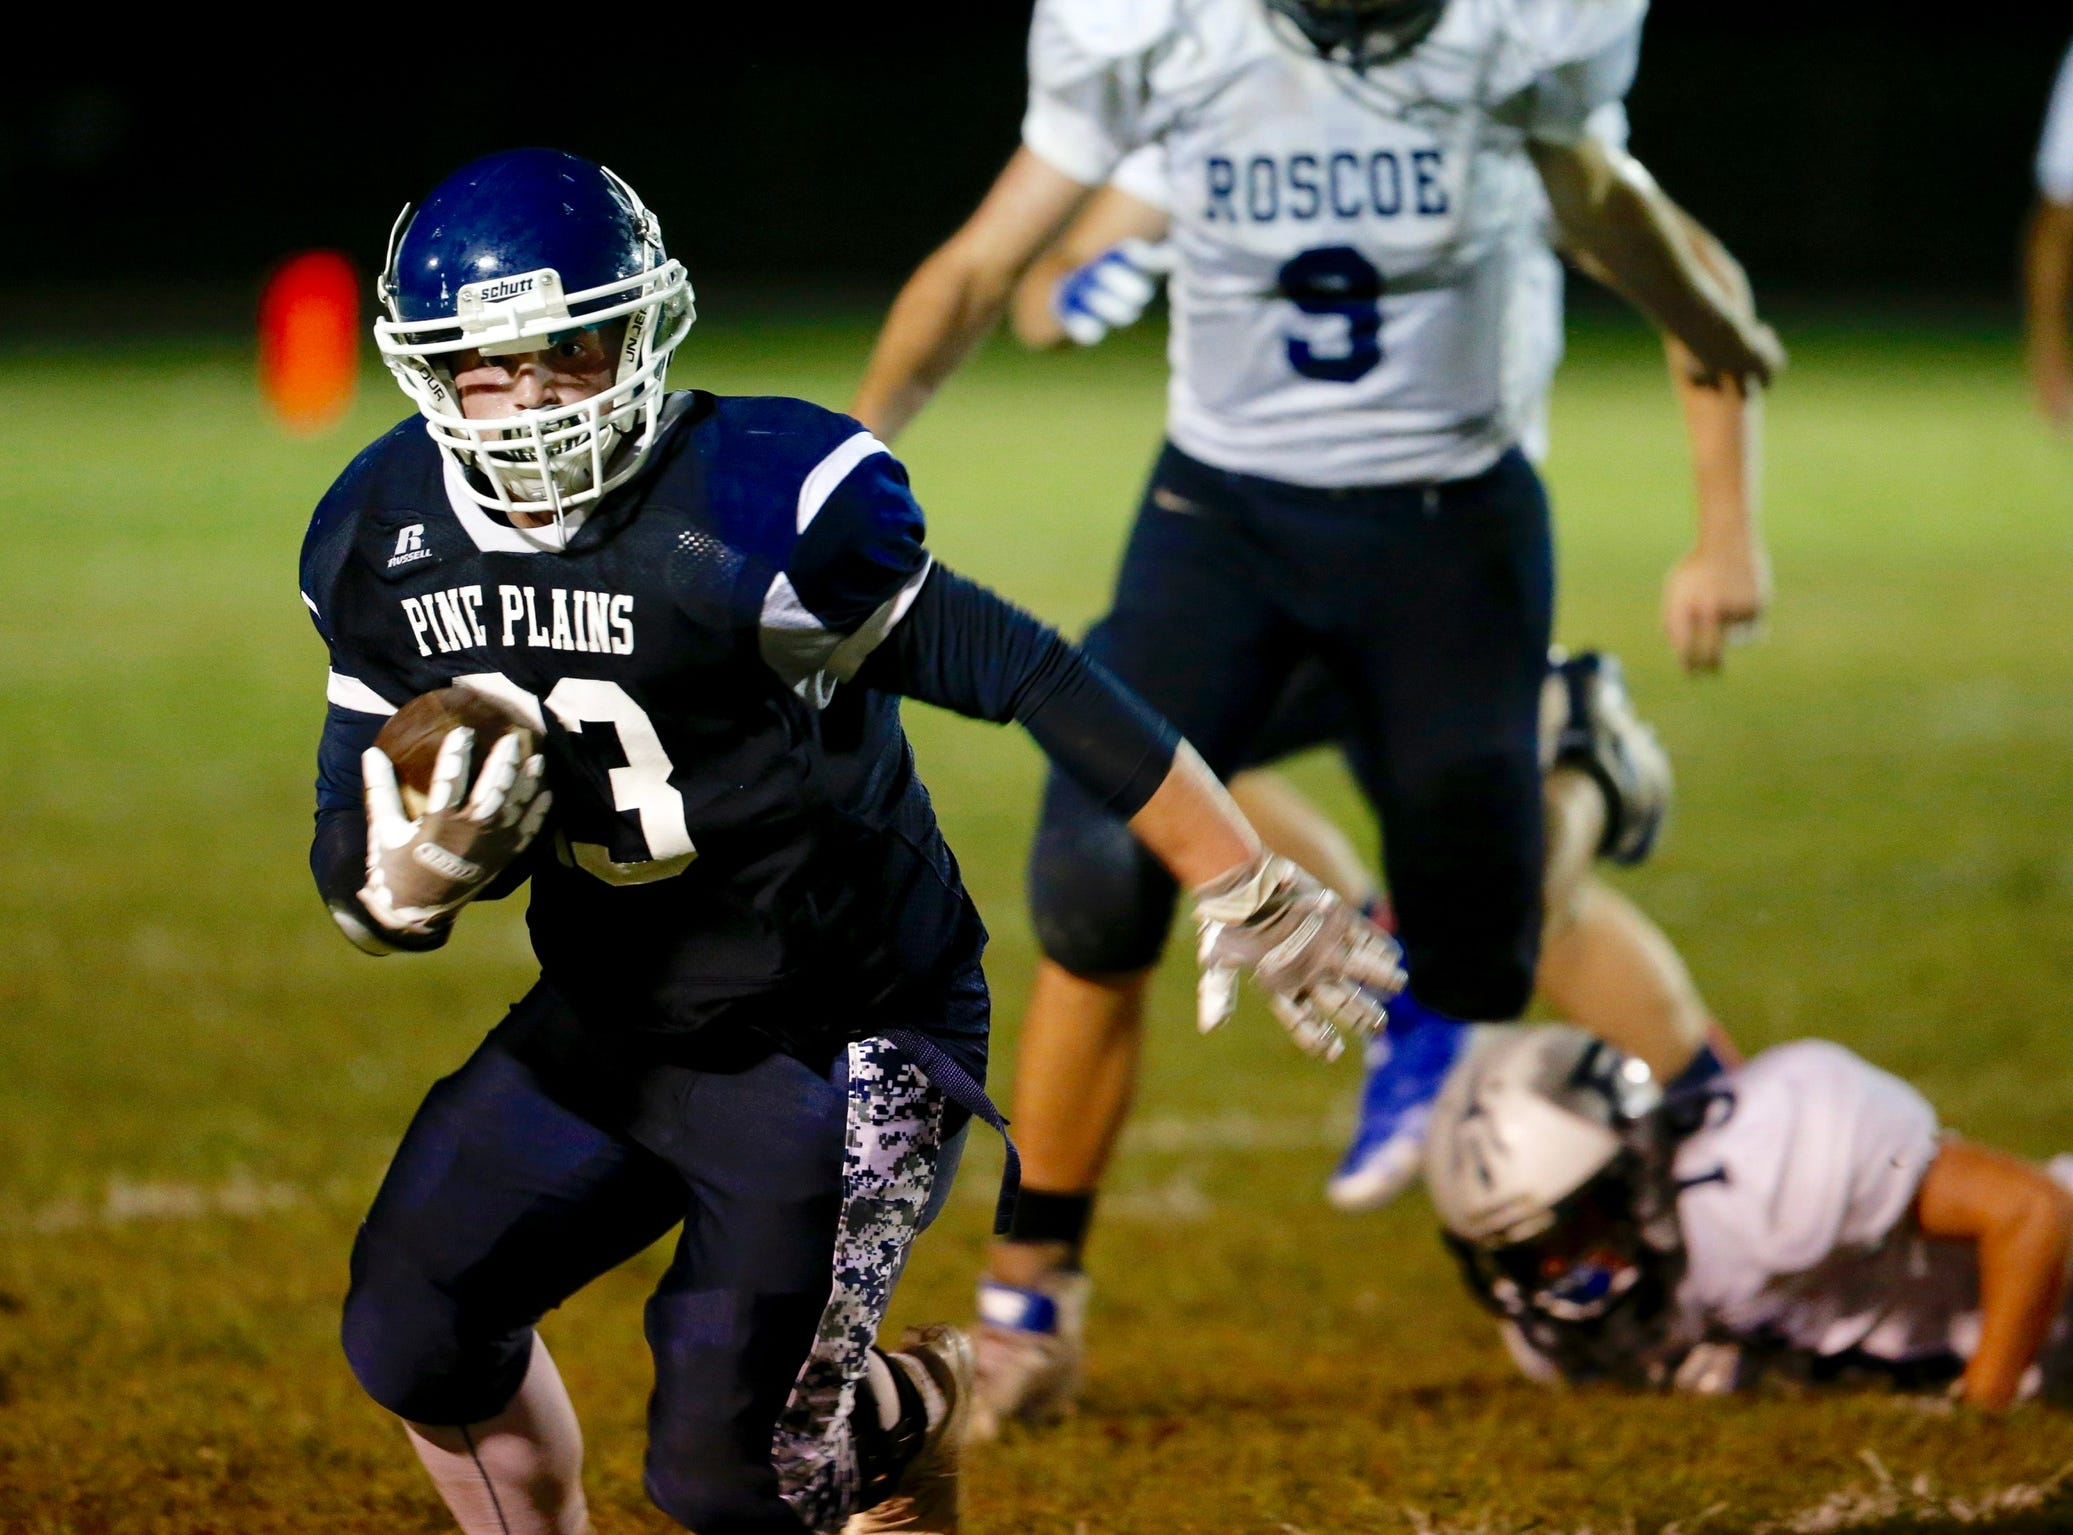 Pine Plains' Kyle Stracher carries the ball for a gain during the second quarter of Friday's home game versus Roscoe on September 7, 2018.